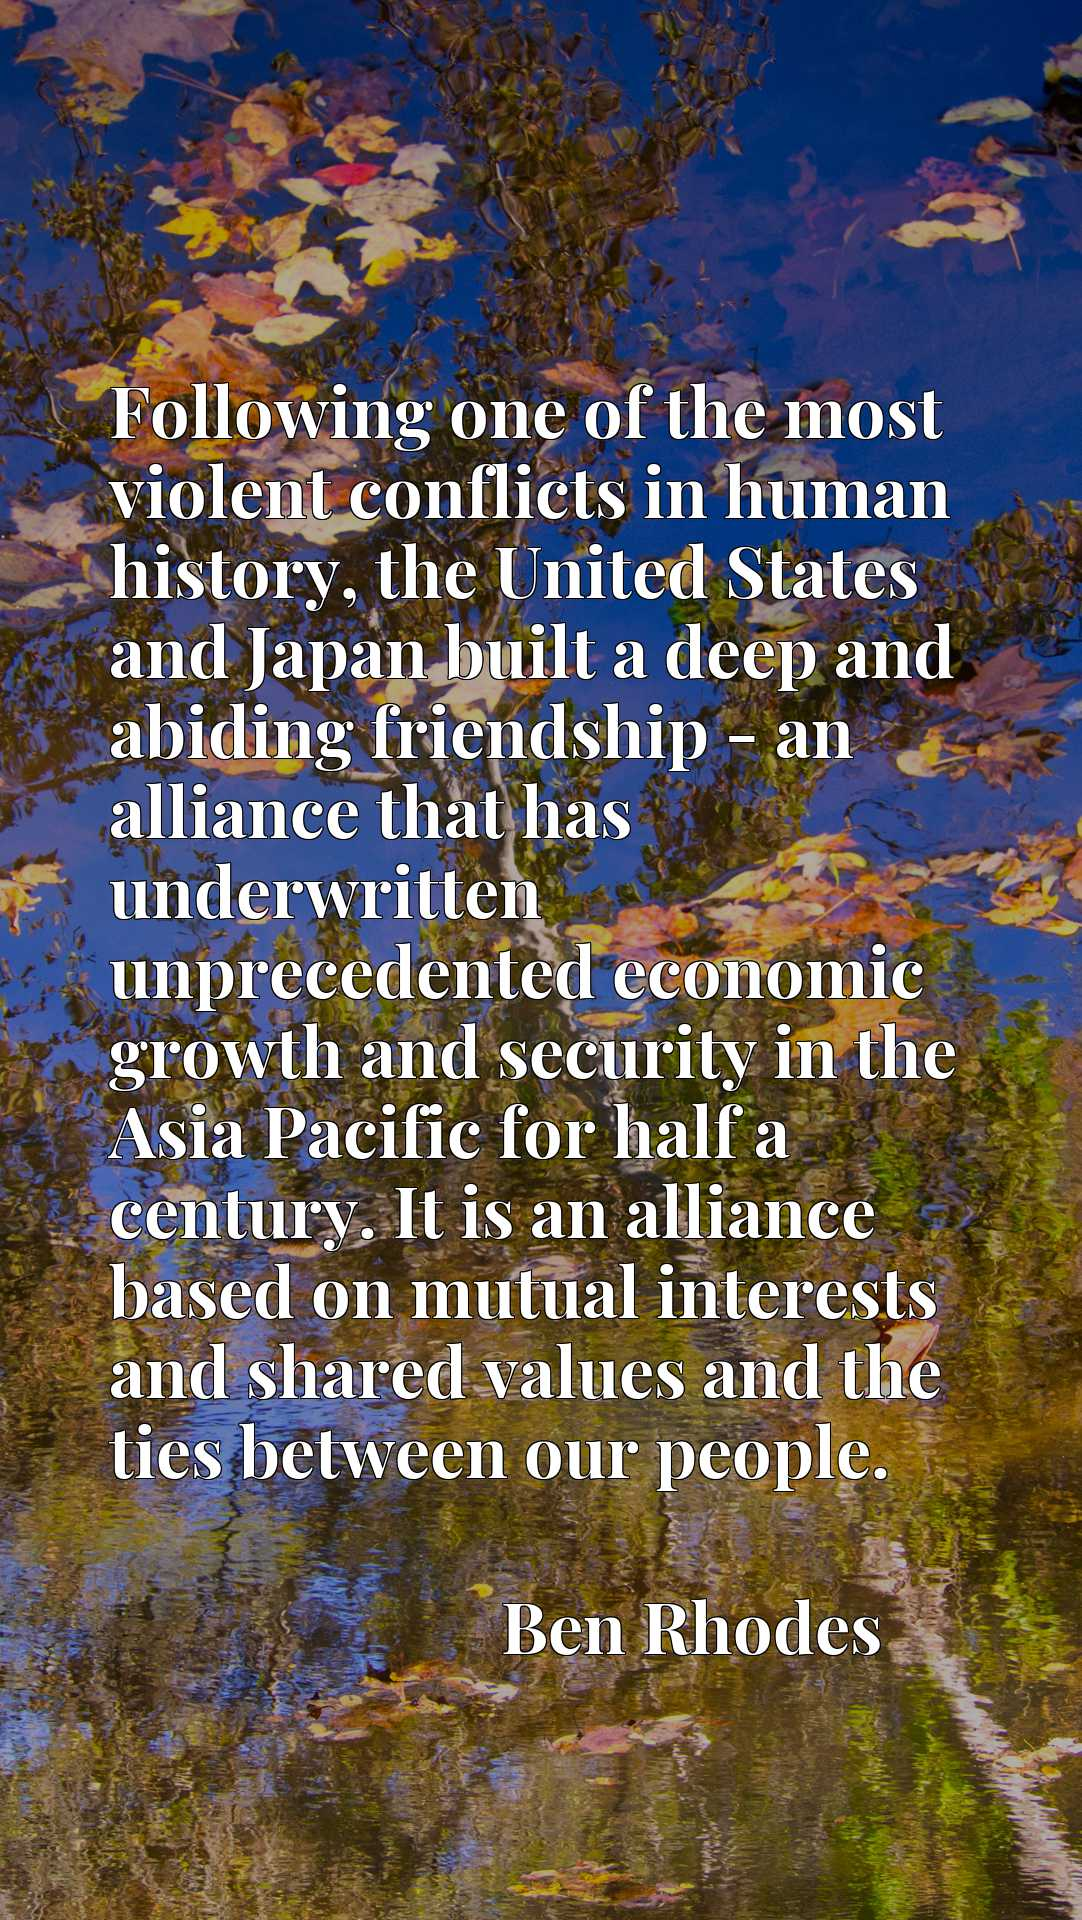 Following one of the most violent conflicts in human history, the United States and Japan built a deep and abiding friendship - an alliance that has underwritten unprecedented economic growth and security in the Asia Pacific for half a century. It is an alliance based on mutual interests and shared values and the ties between our people.